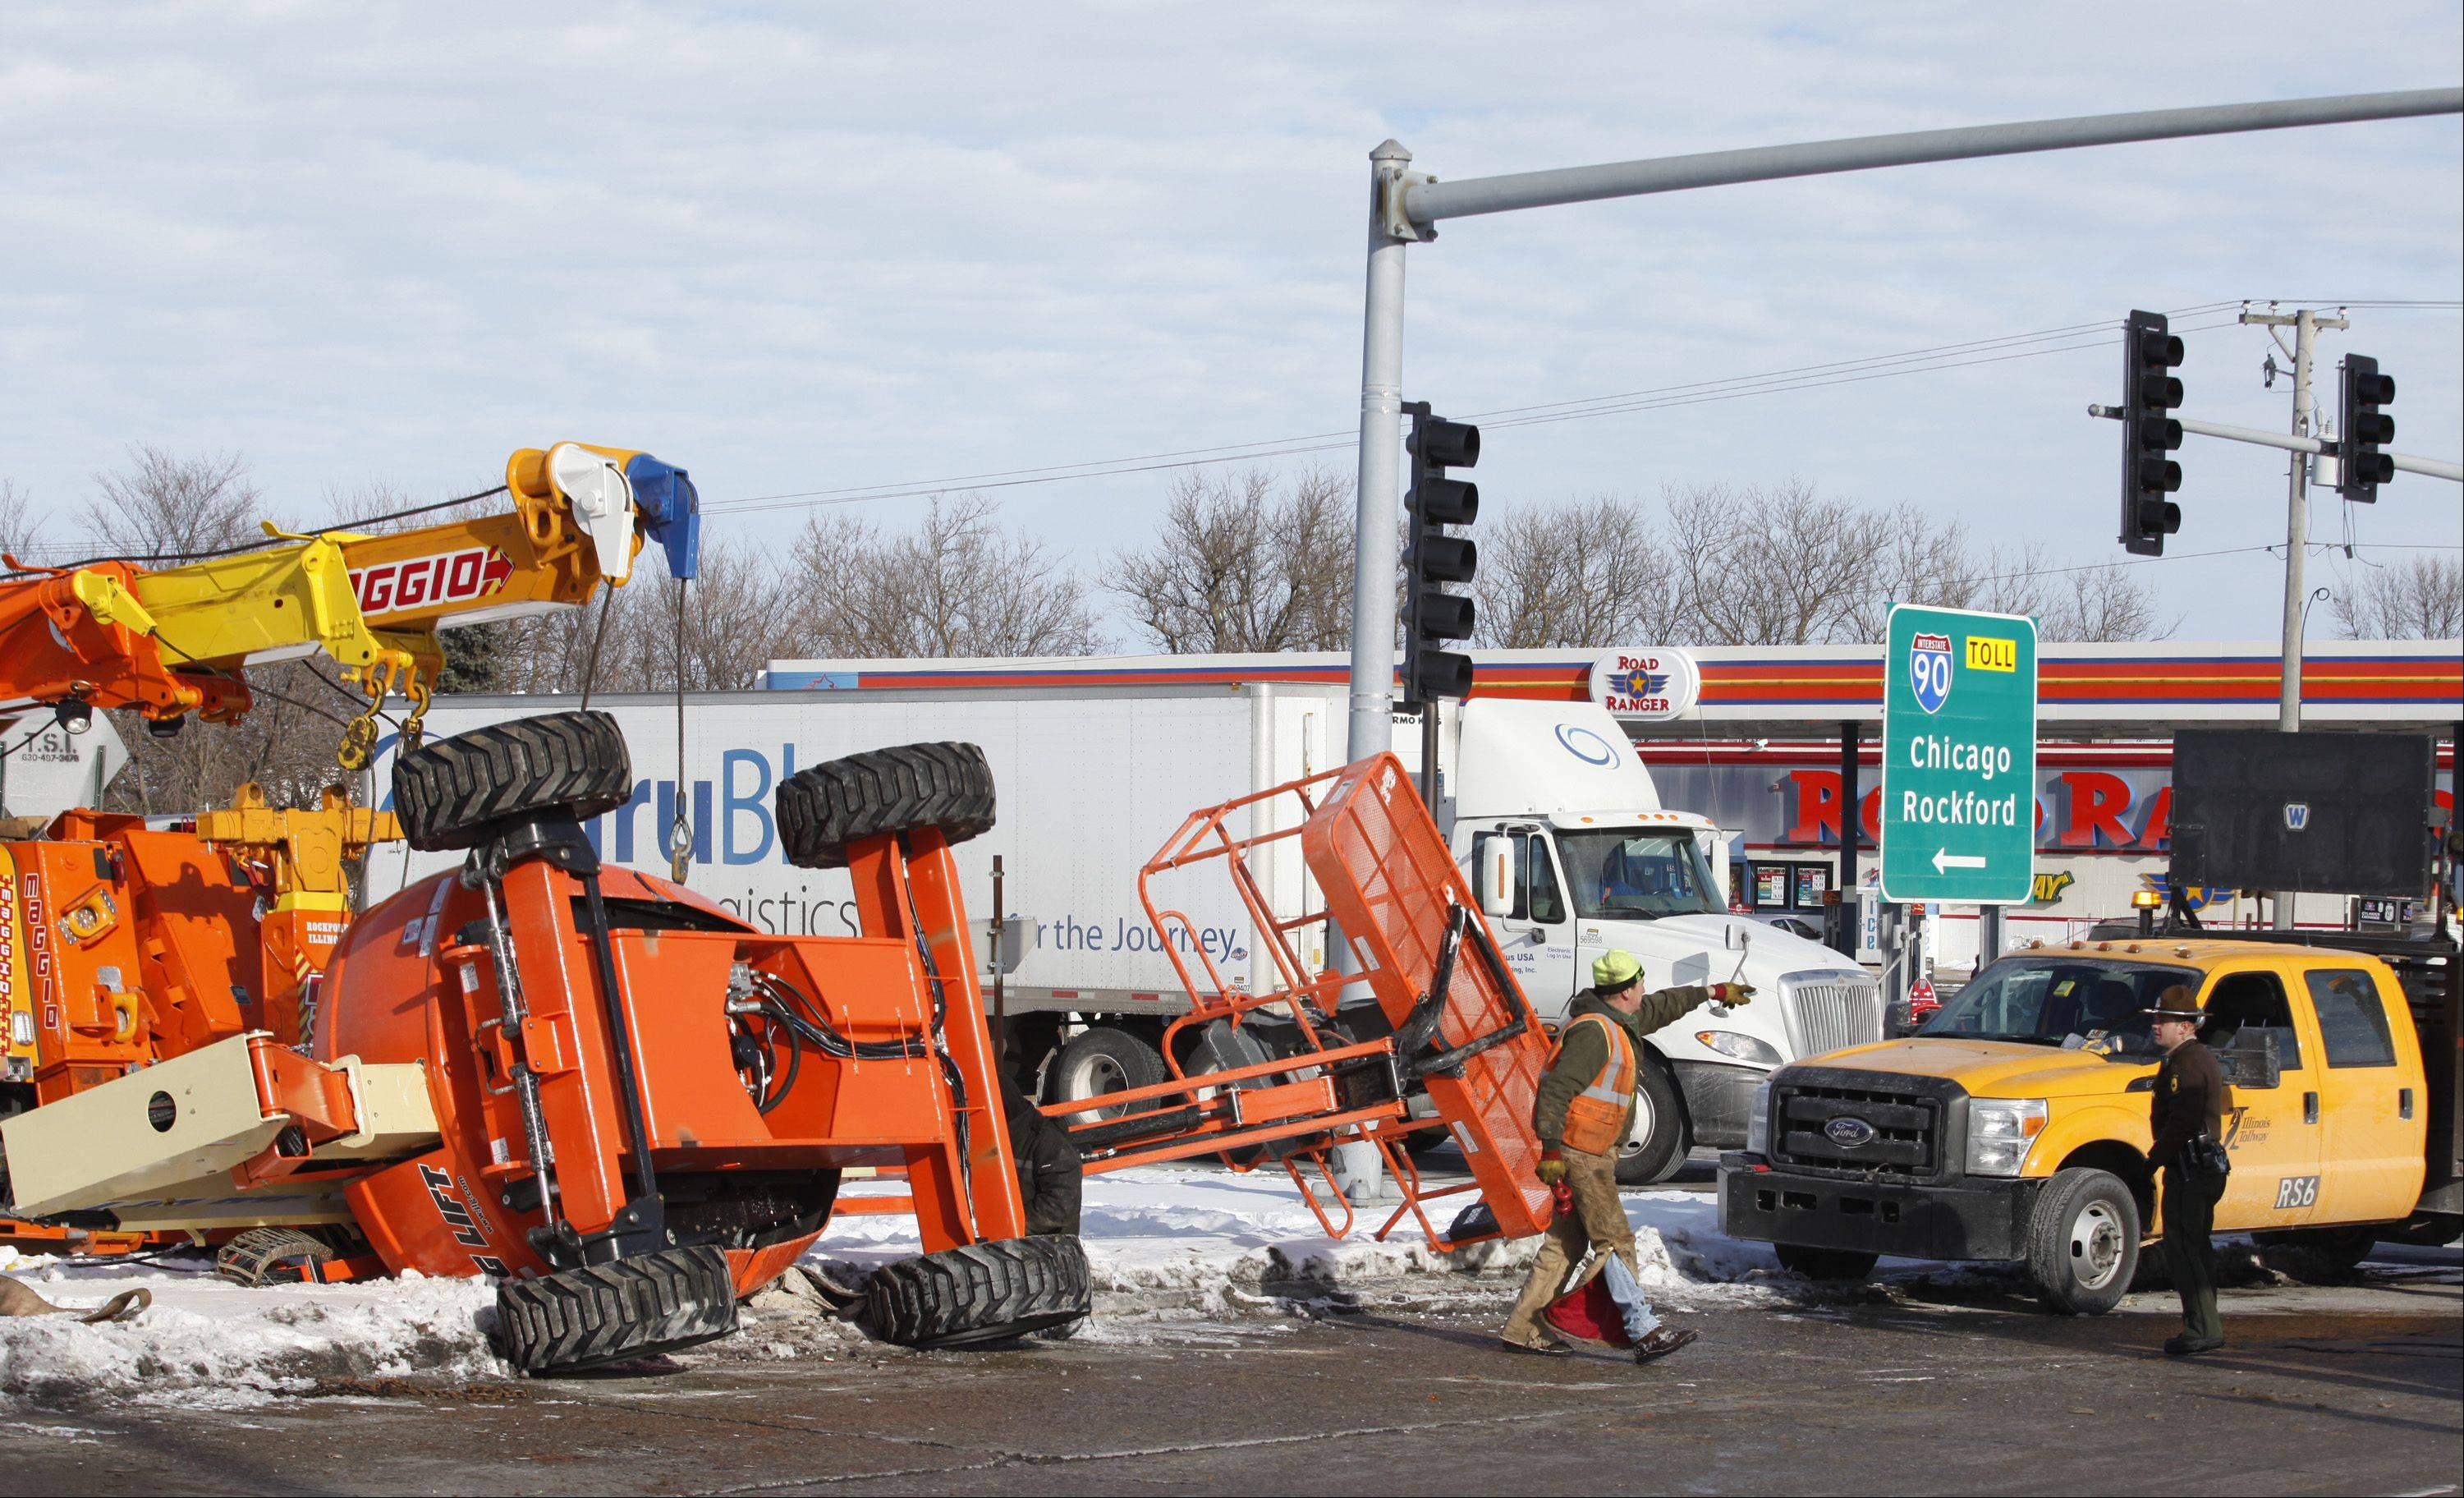 Towing crew members work to right a boom lift Wednesday morning after it fell from a truck at Route 20 and the Jane Addams Tollway entrance ramp in Hampshire. Traffic was snarled for awhile but the accident caused no injuries, police said.